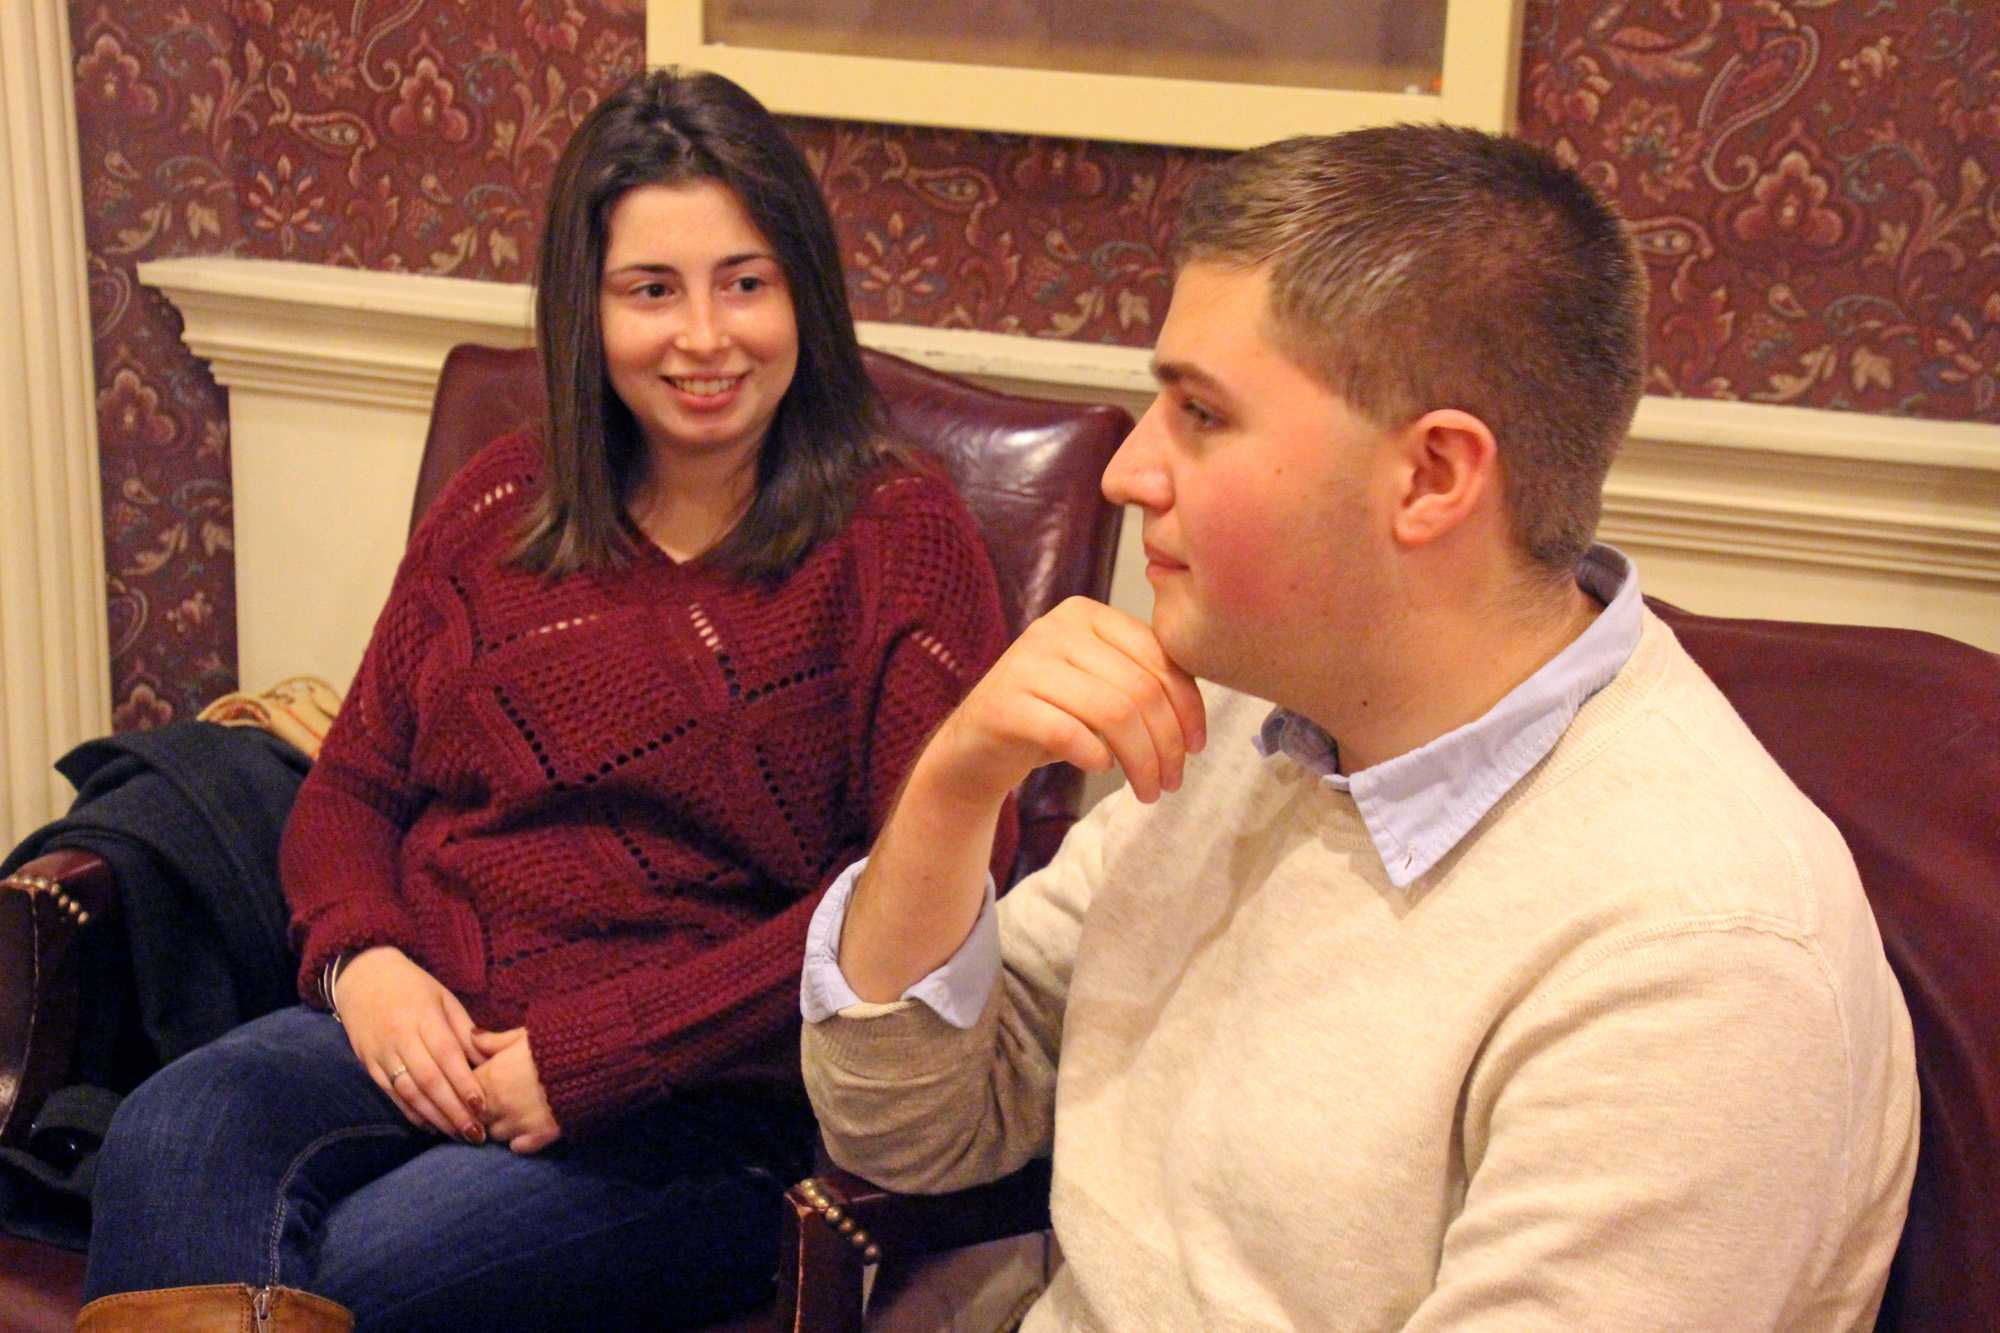 Student Senate vice-presidents (left) Sarah Hochman and Matt Hill discuss what they have done during their time in the Senate.